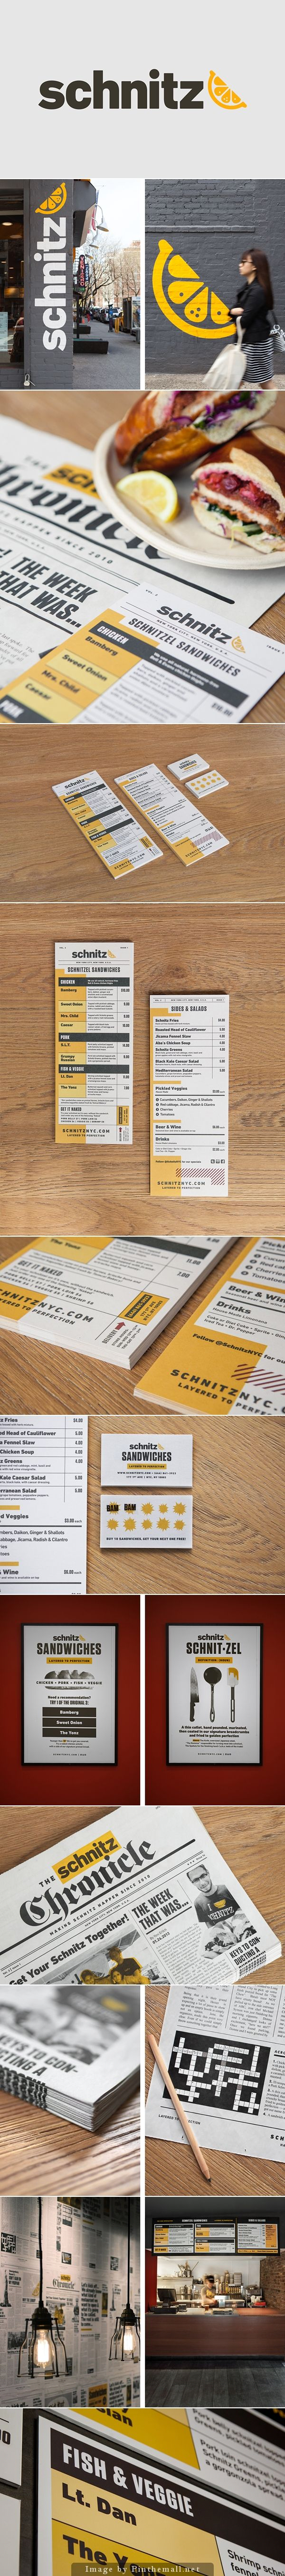 Schnitz Branding, Graphic Design, Print Design By Tag Collective - created via http://pinthemall.net